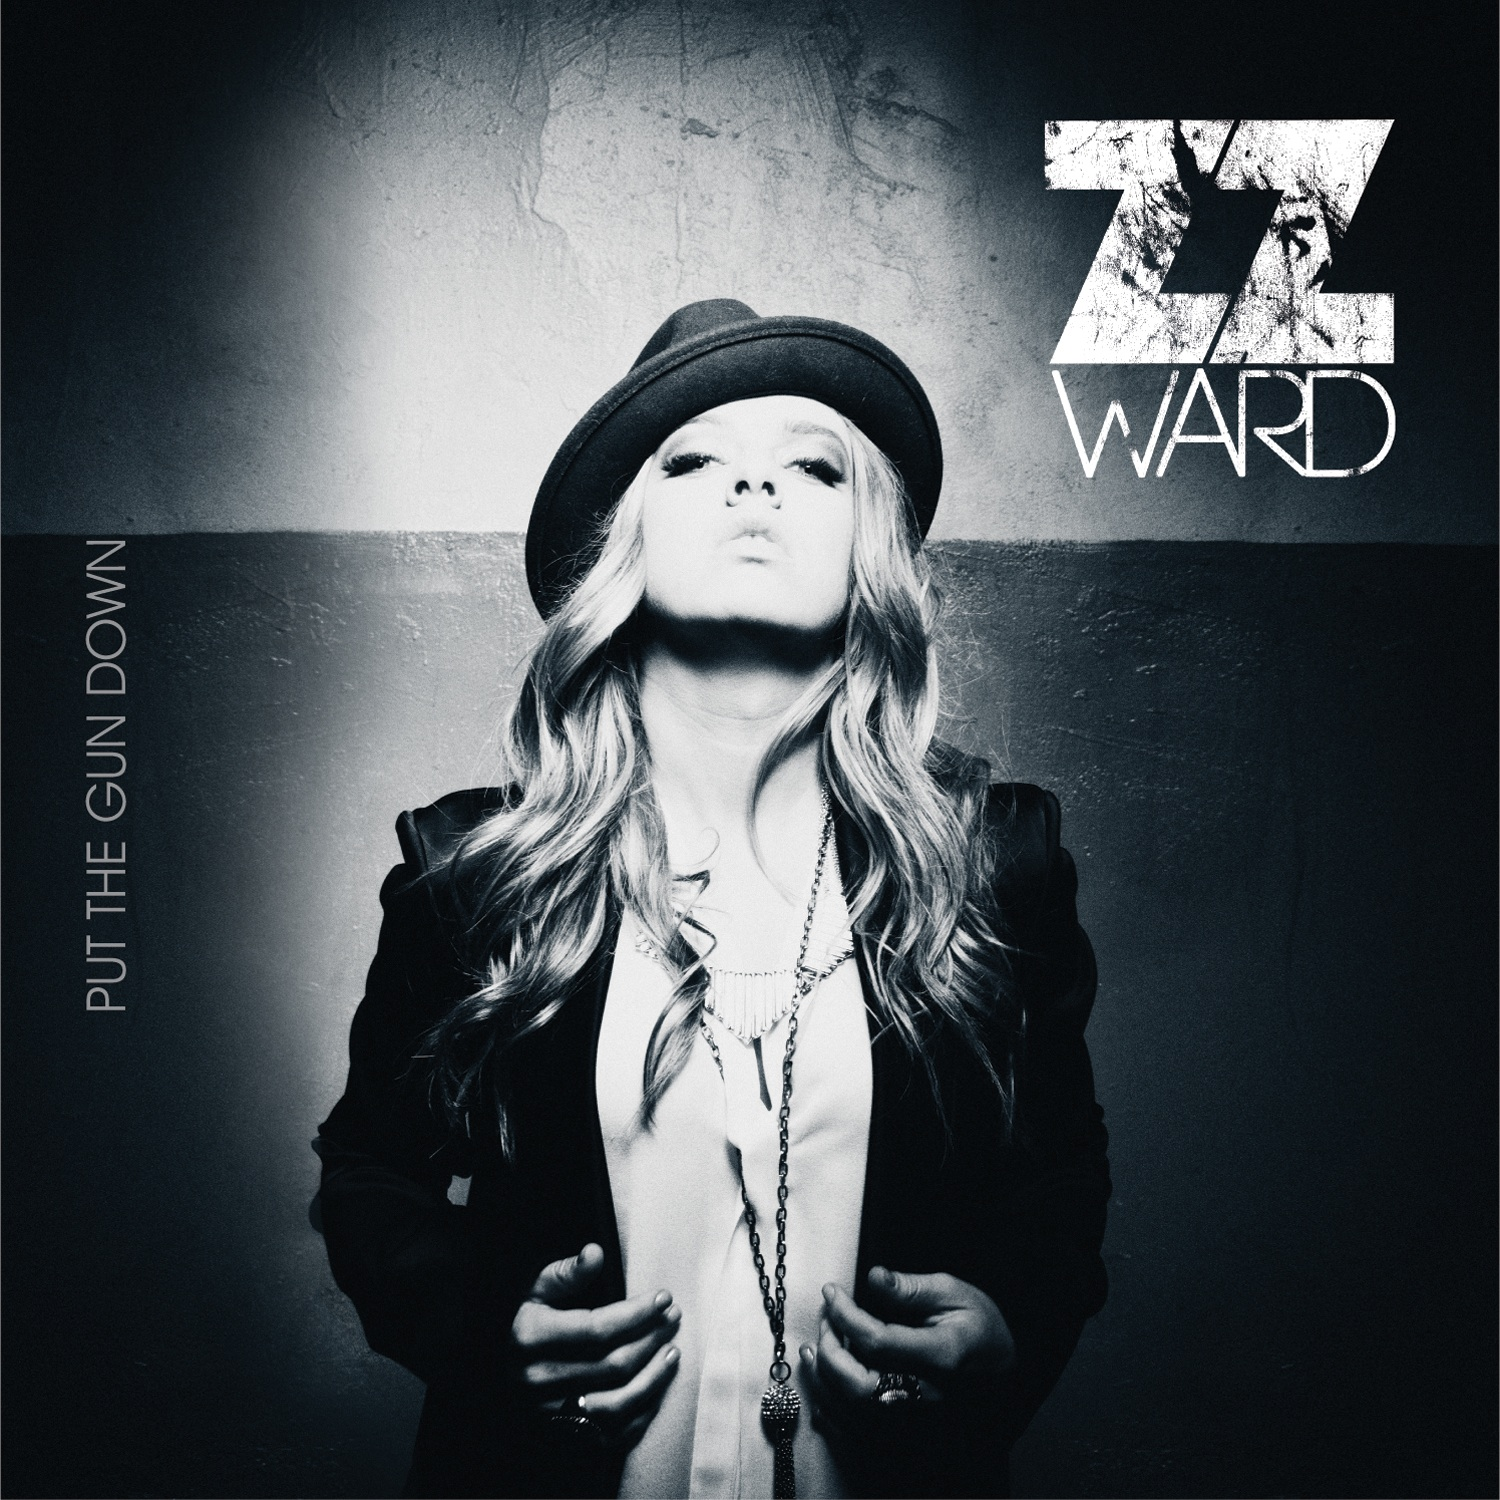 Zz-ward-single-cover.jpg